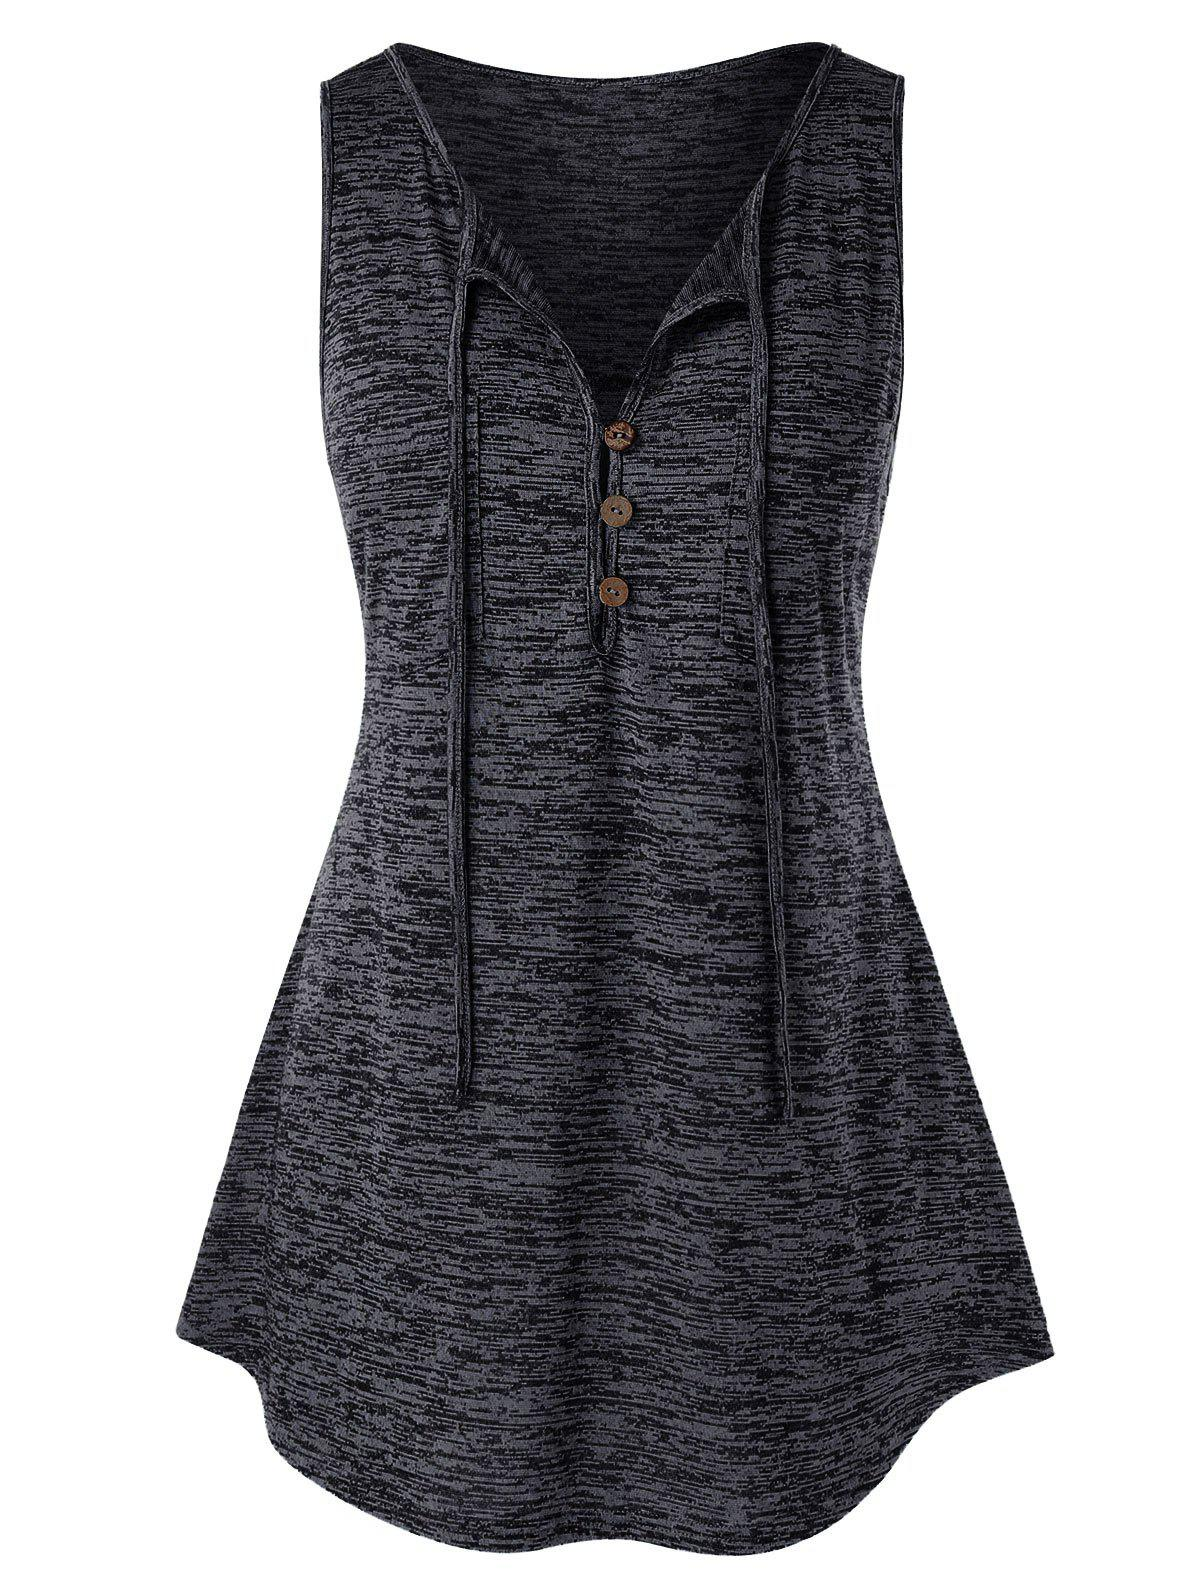 Plus Size Button Embellished Vest - DARK SLATE GREY 3X